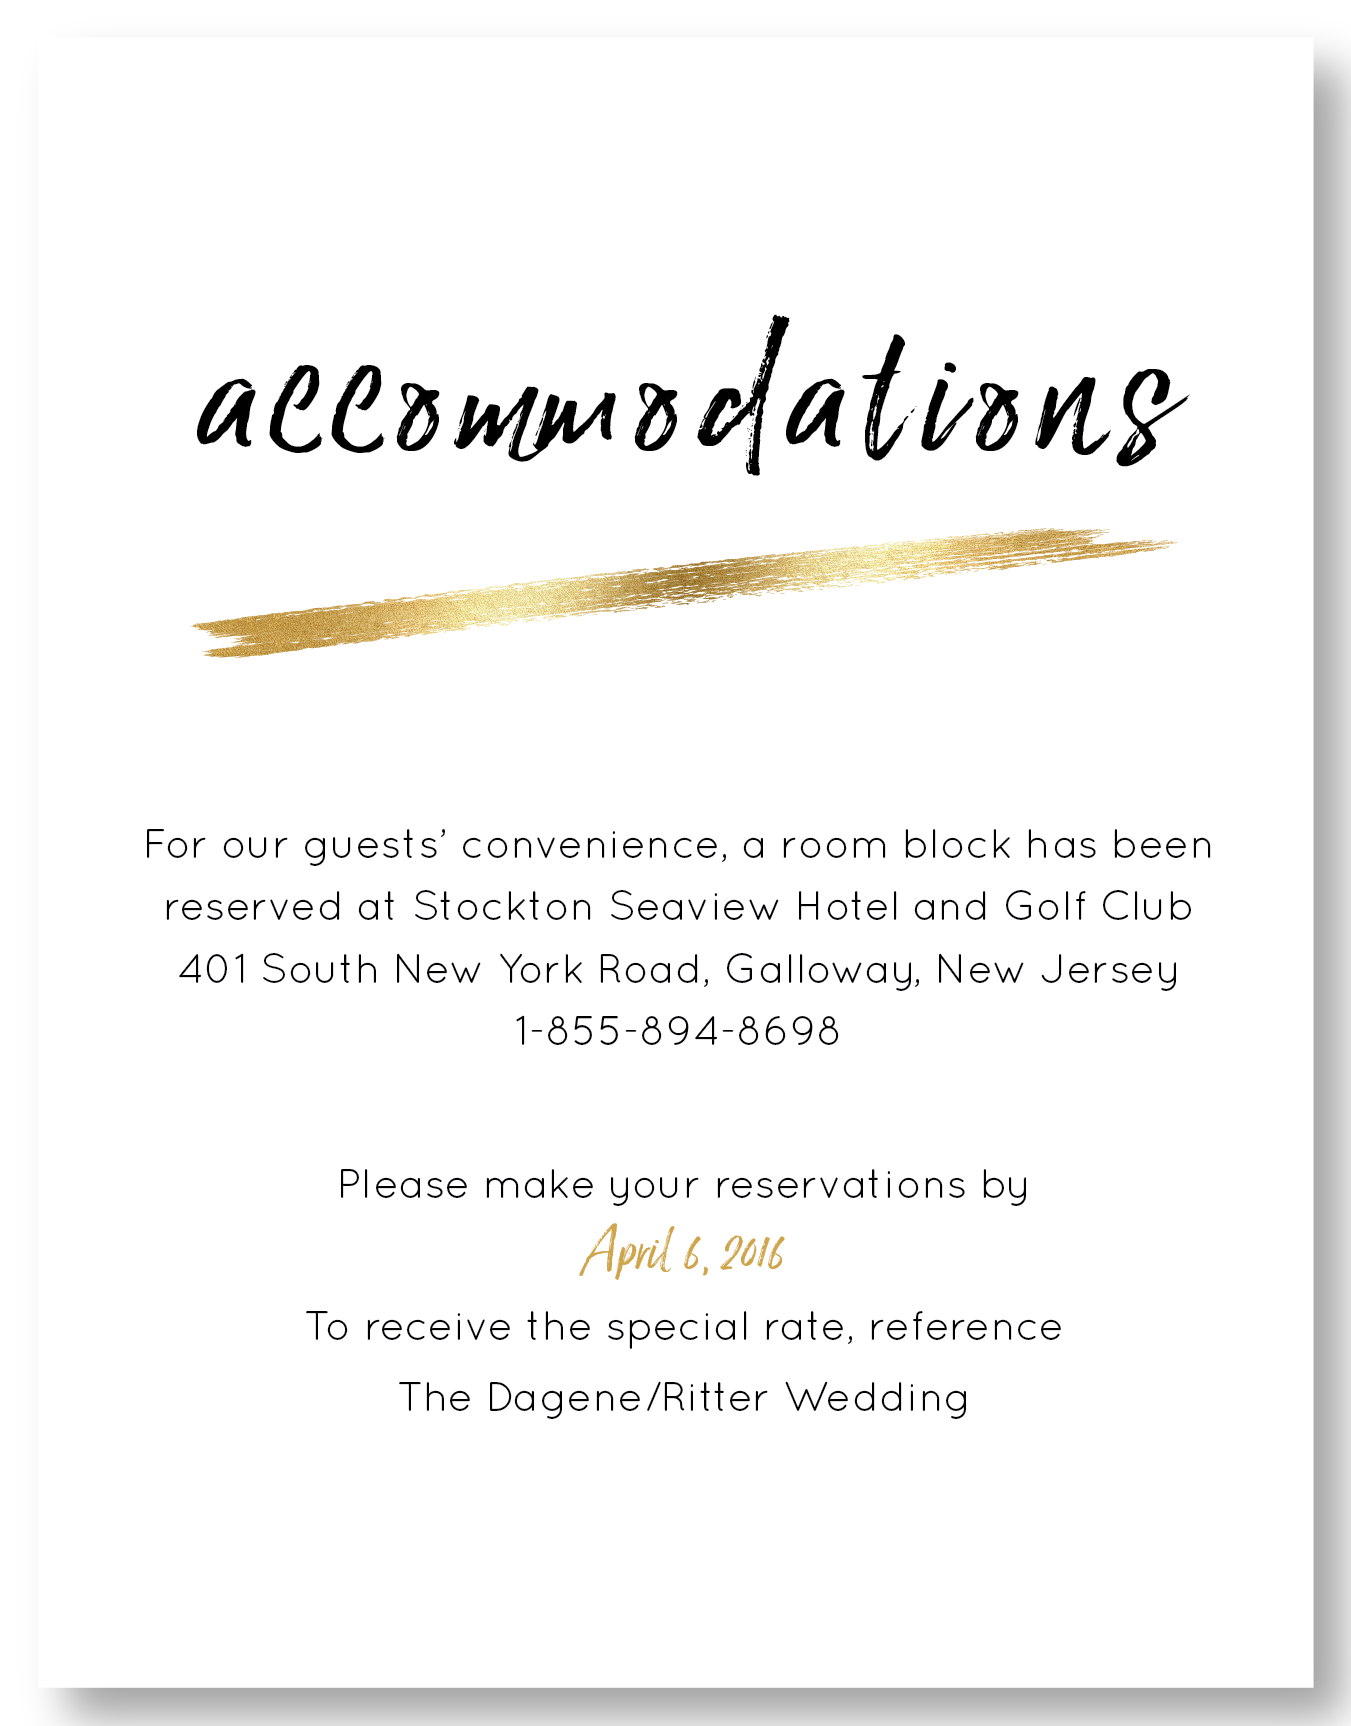 The Seaview - Accommodation Card